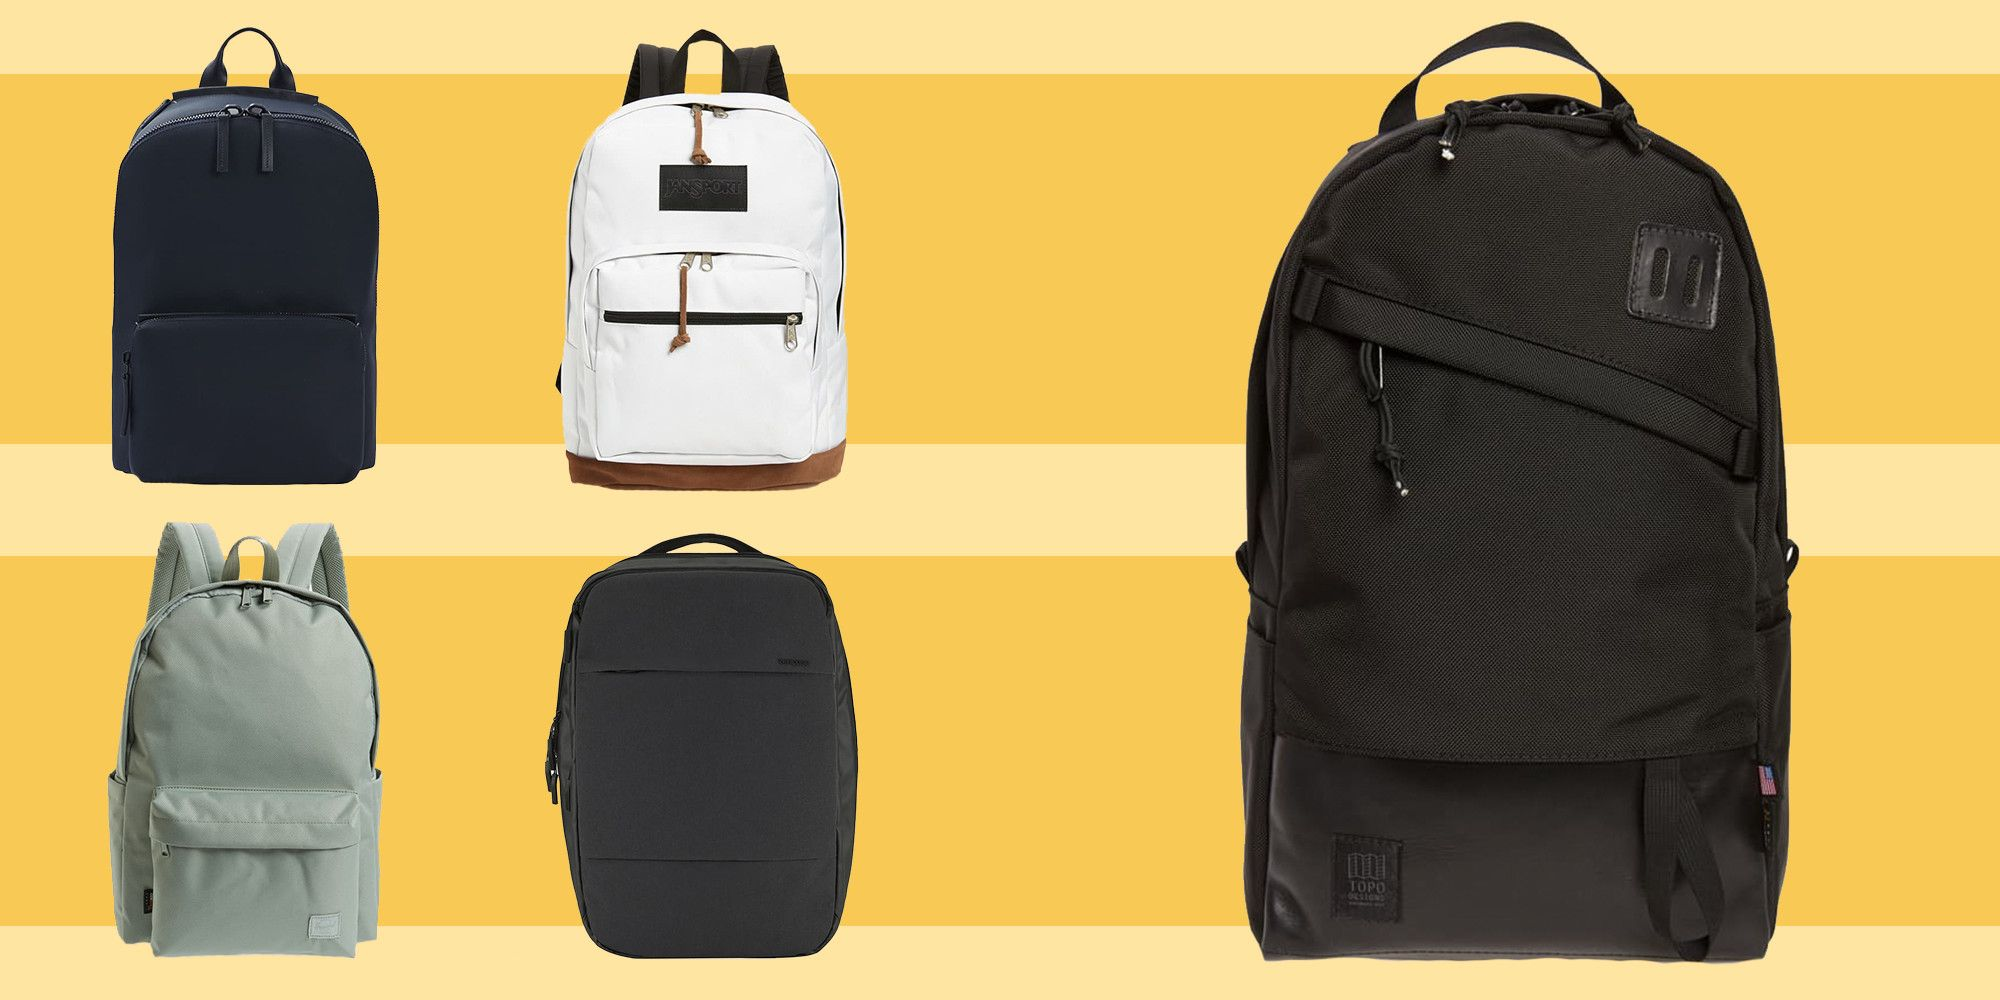 13 College-Friendly Backpacks That You Can Still Use When You Graduate